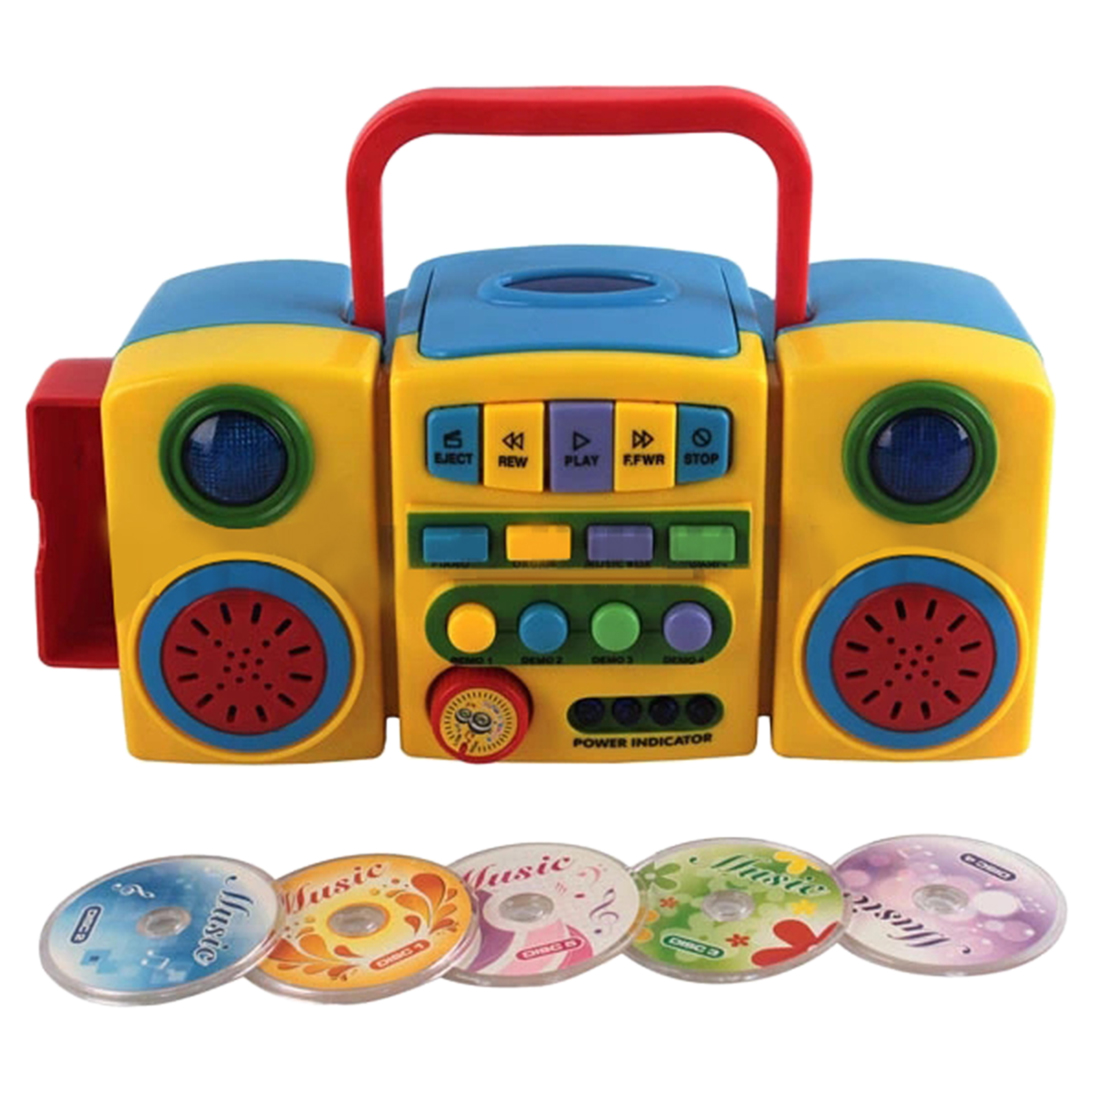 Kids CD Player Learning Player Educational Musical Toy Boys Girl Gift Toys Musical Instrument Interactive Toy For Children Kids